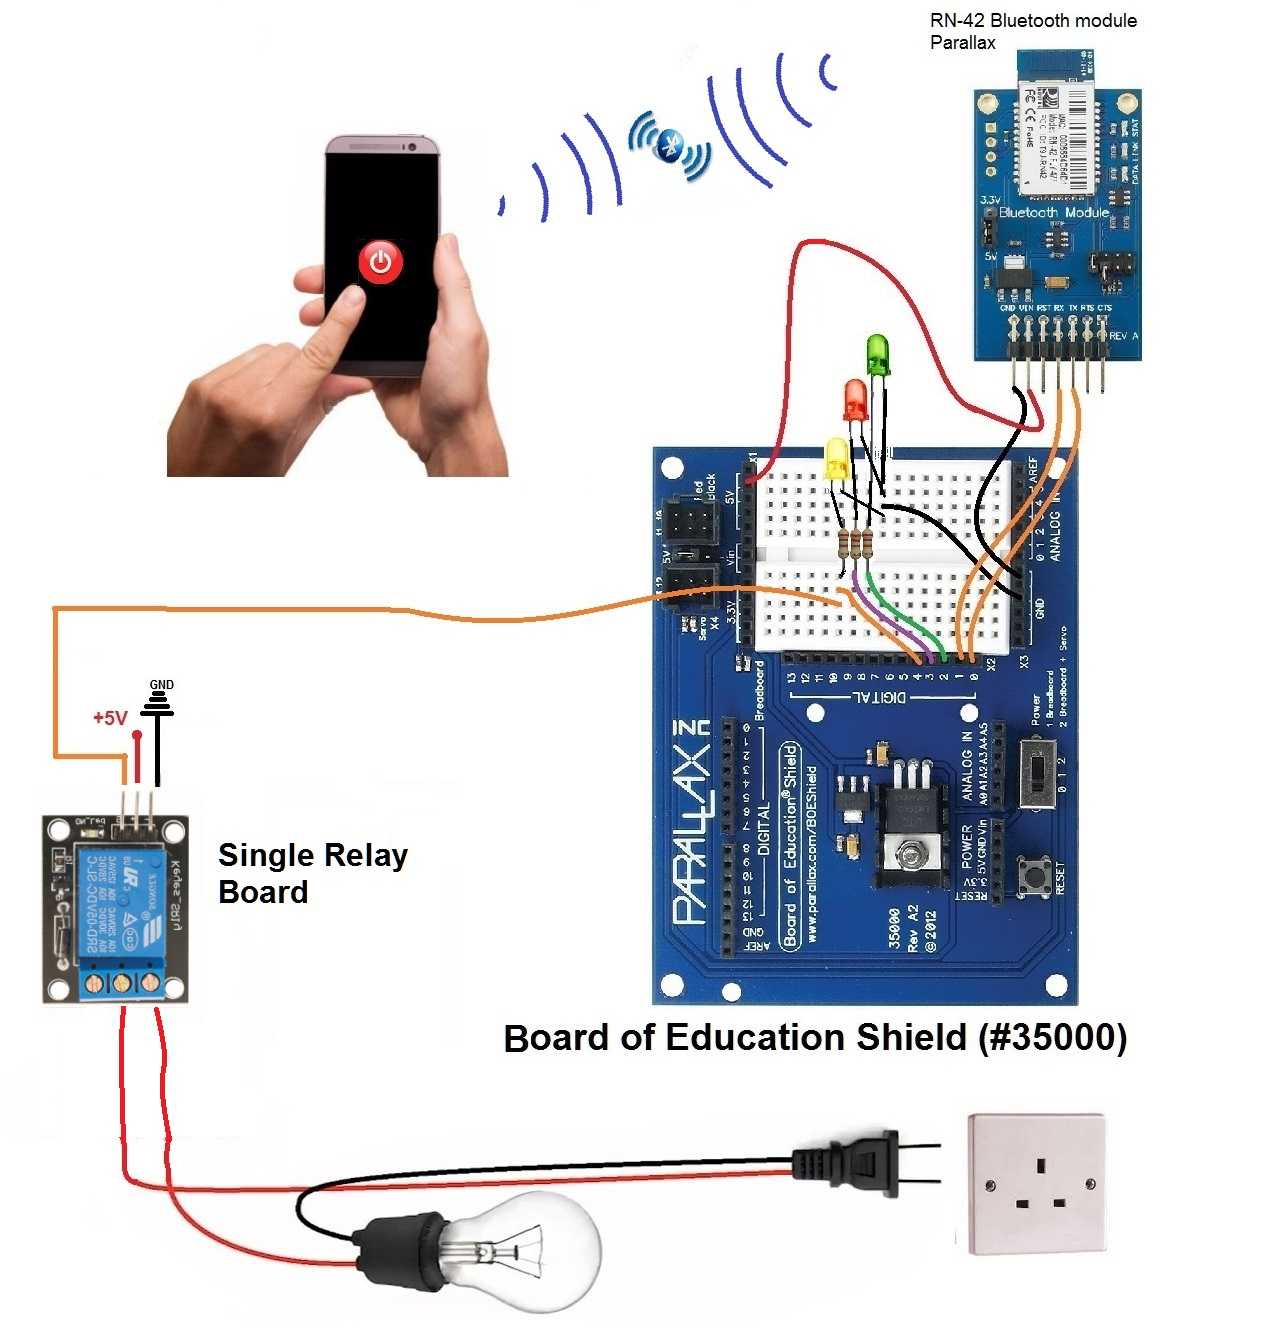 Android And Rn 42 Bluetooth Module Parallax Forums Circuit Diagram Of Device Arduino Uno Lamp